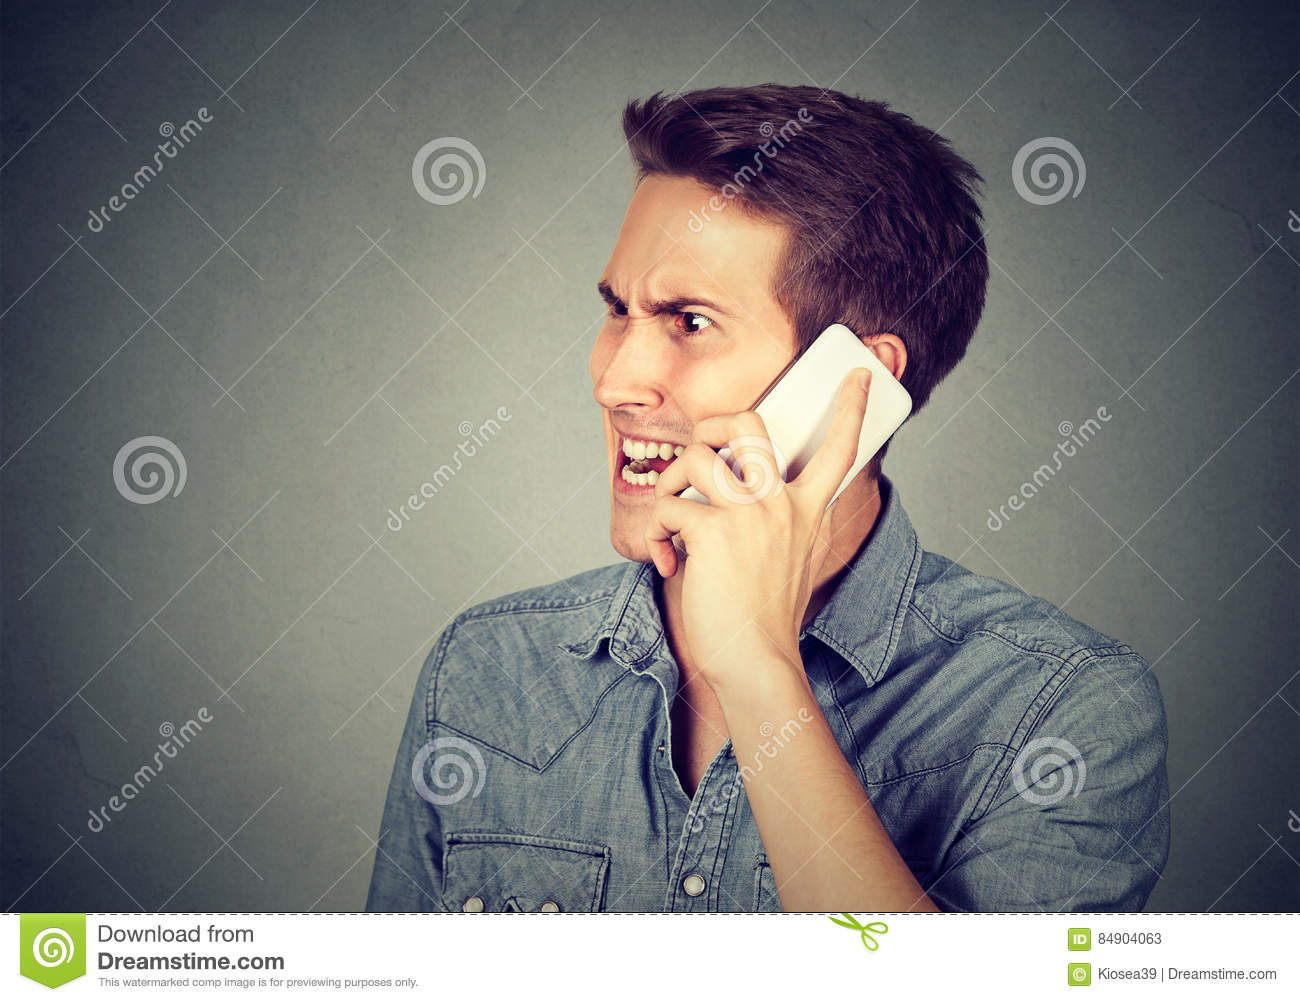 Download Man Annoyed, Frustrated By Someone Talking On Mobile Phone Stock Image - Image of dismay, furious: 84904063